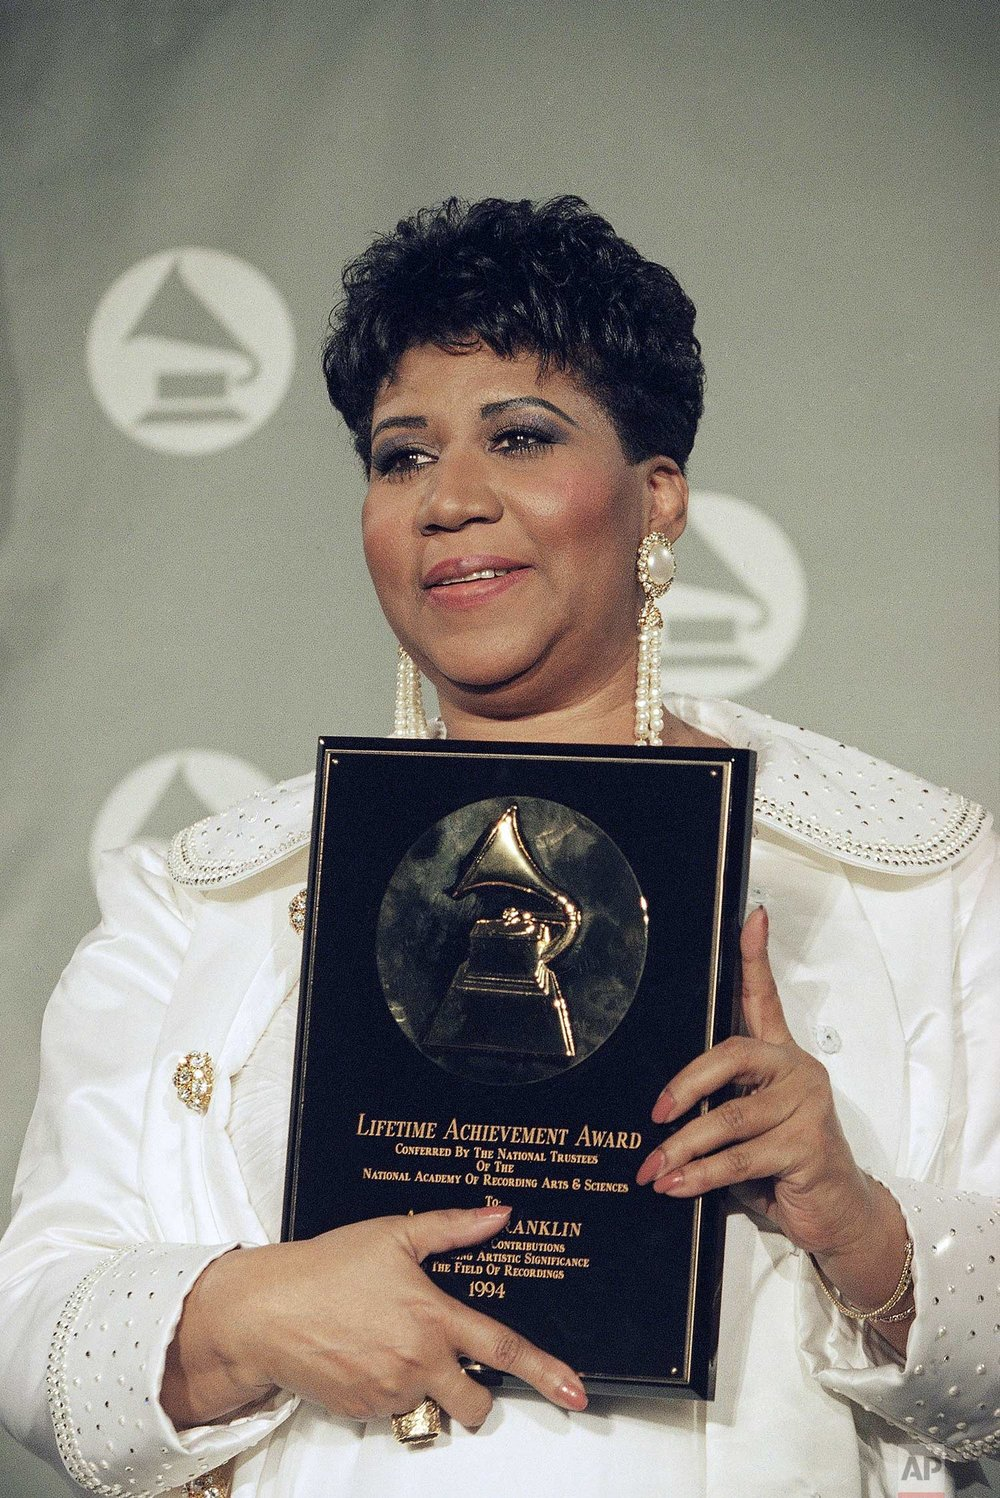 Aretha Franklin holds her award for lifetime achievement backstage at the 36th Annual Grammy Awards ceremonies at New York's Radio City Music Hall, March 1, 1994. (AP Photo/Mike Albans)